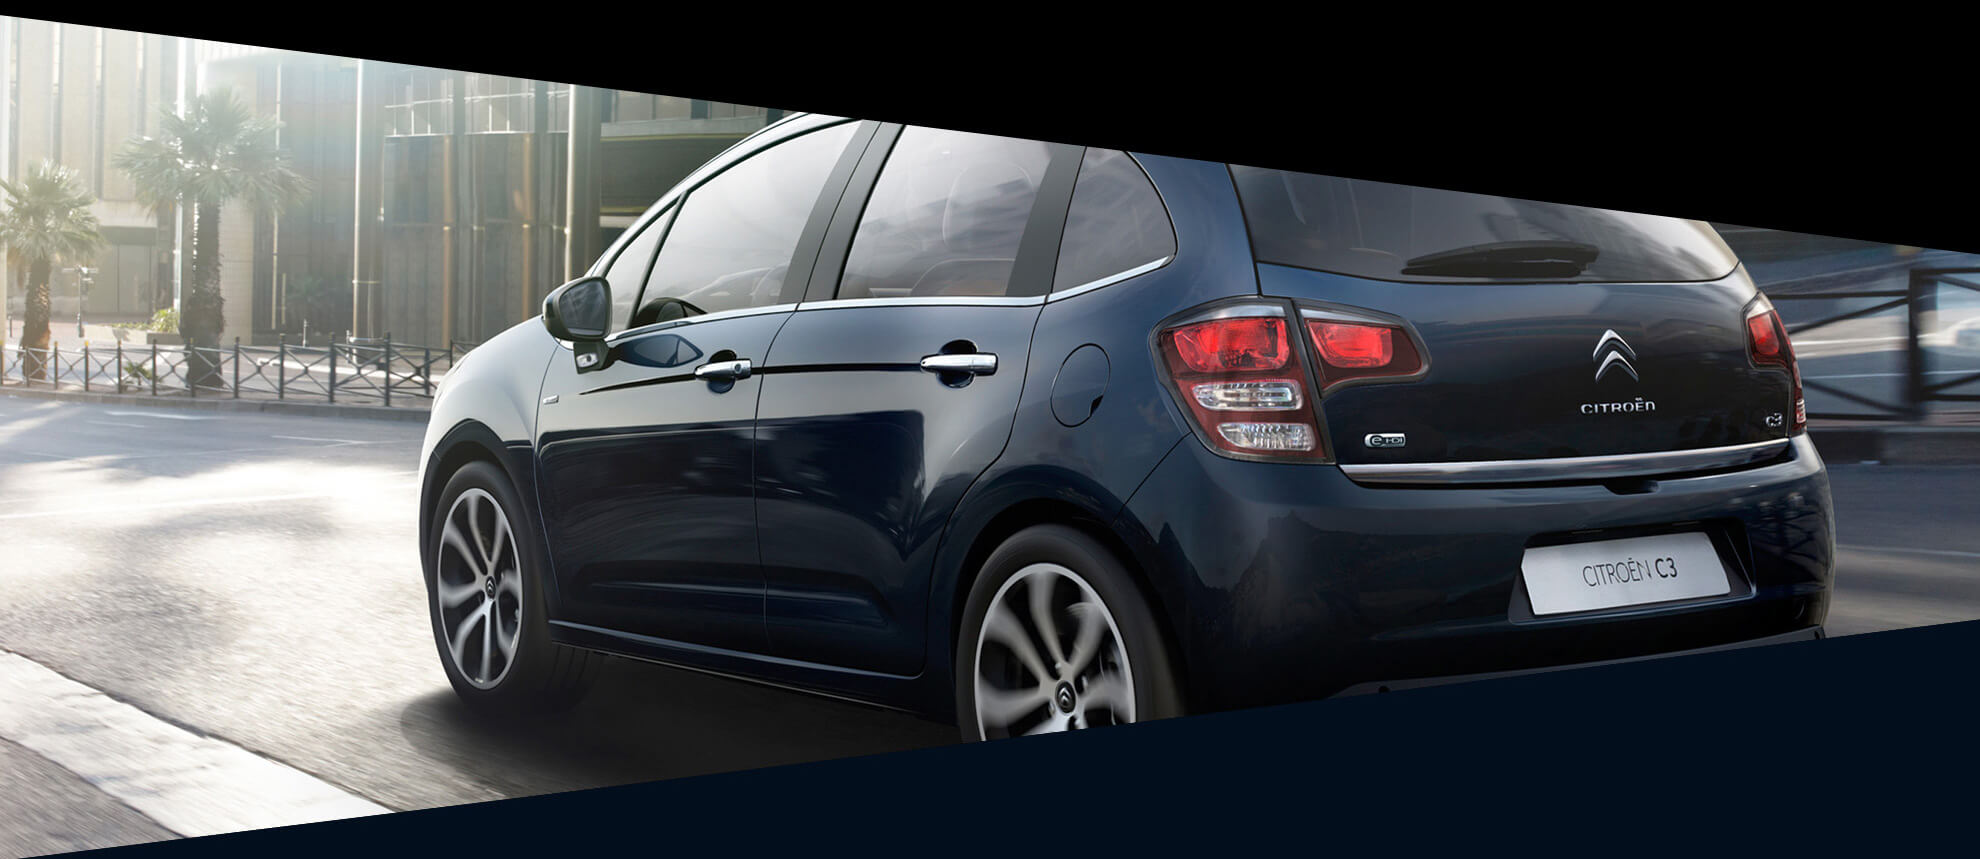 Get Finance In Cinderford And Gloucester Nick King Car Sales